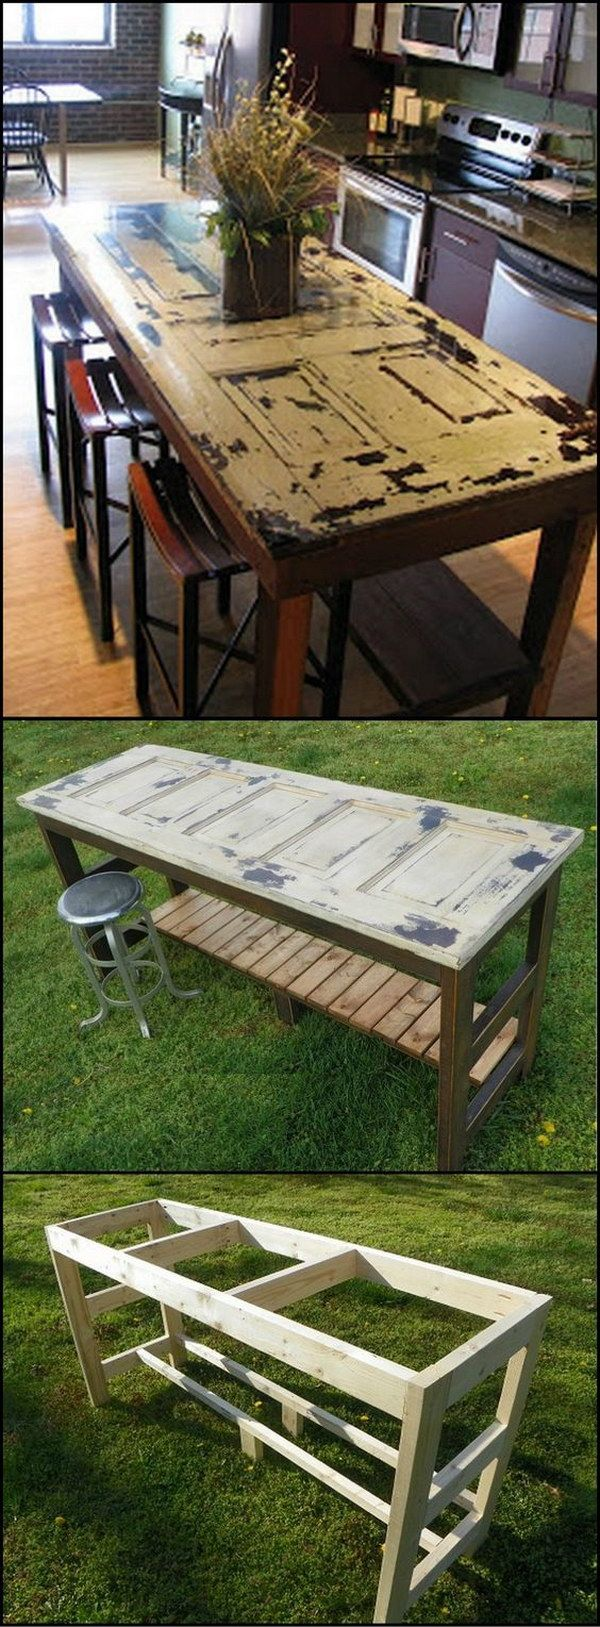 how to repurpose old furniture. 40 awesome makeovers clever ways with tutorials to repurpose old furniture how